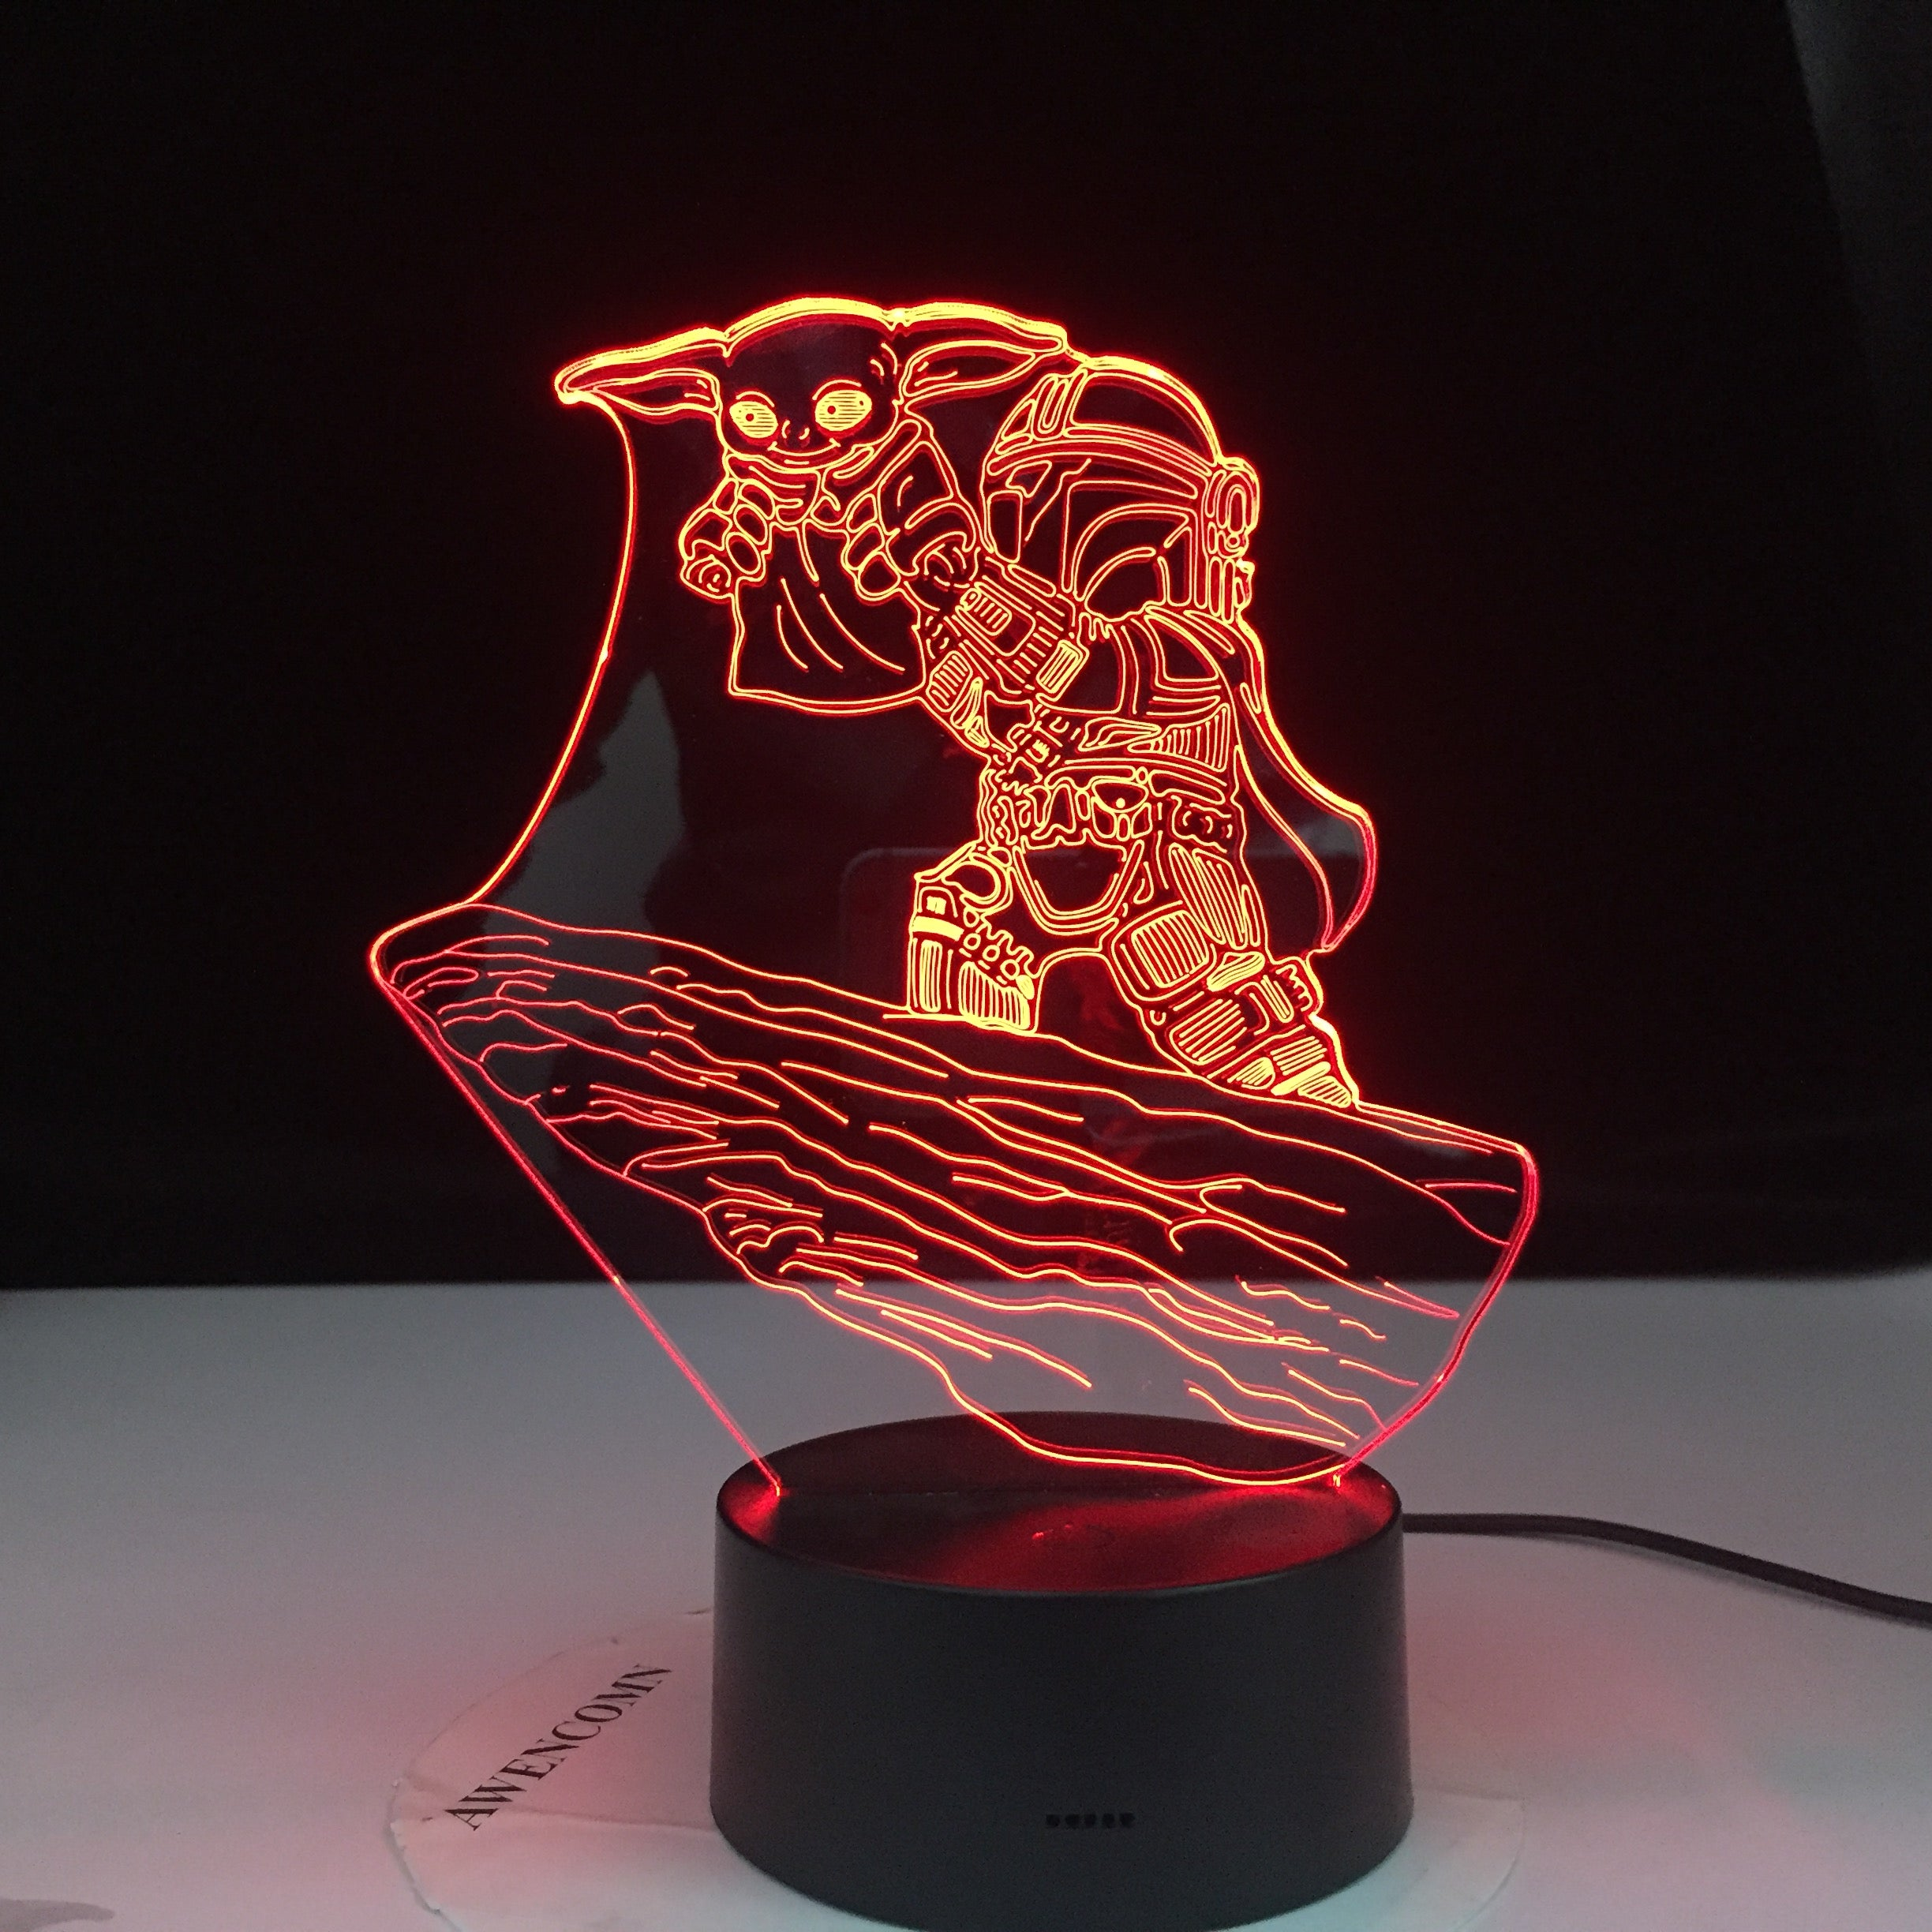 Star Wars Yoda Figure Desk Lamp for Kids Bedroom Decor Table Lamp Children Projection Light 3d Led Night Light Dropshipping